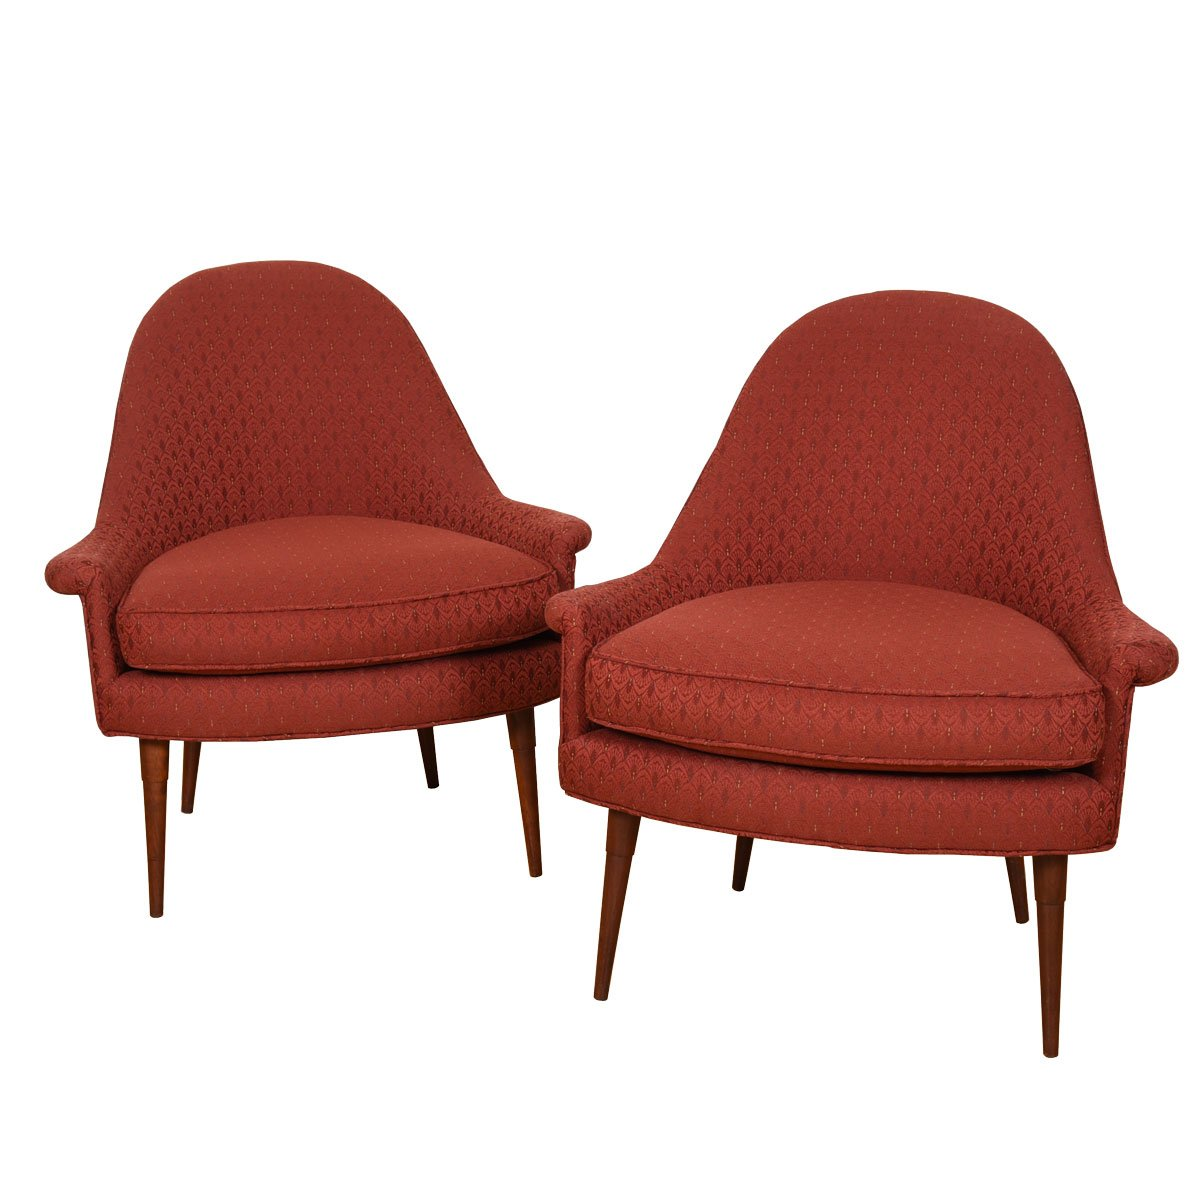 American Modernist Pair of Accent / Club Chairs